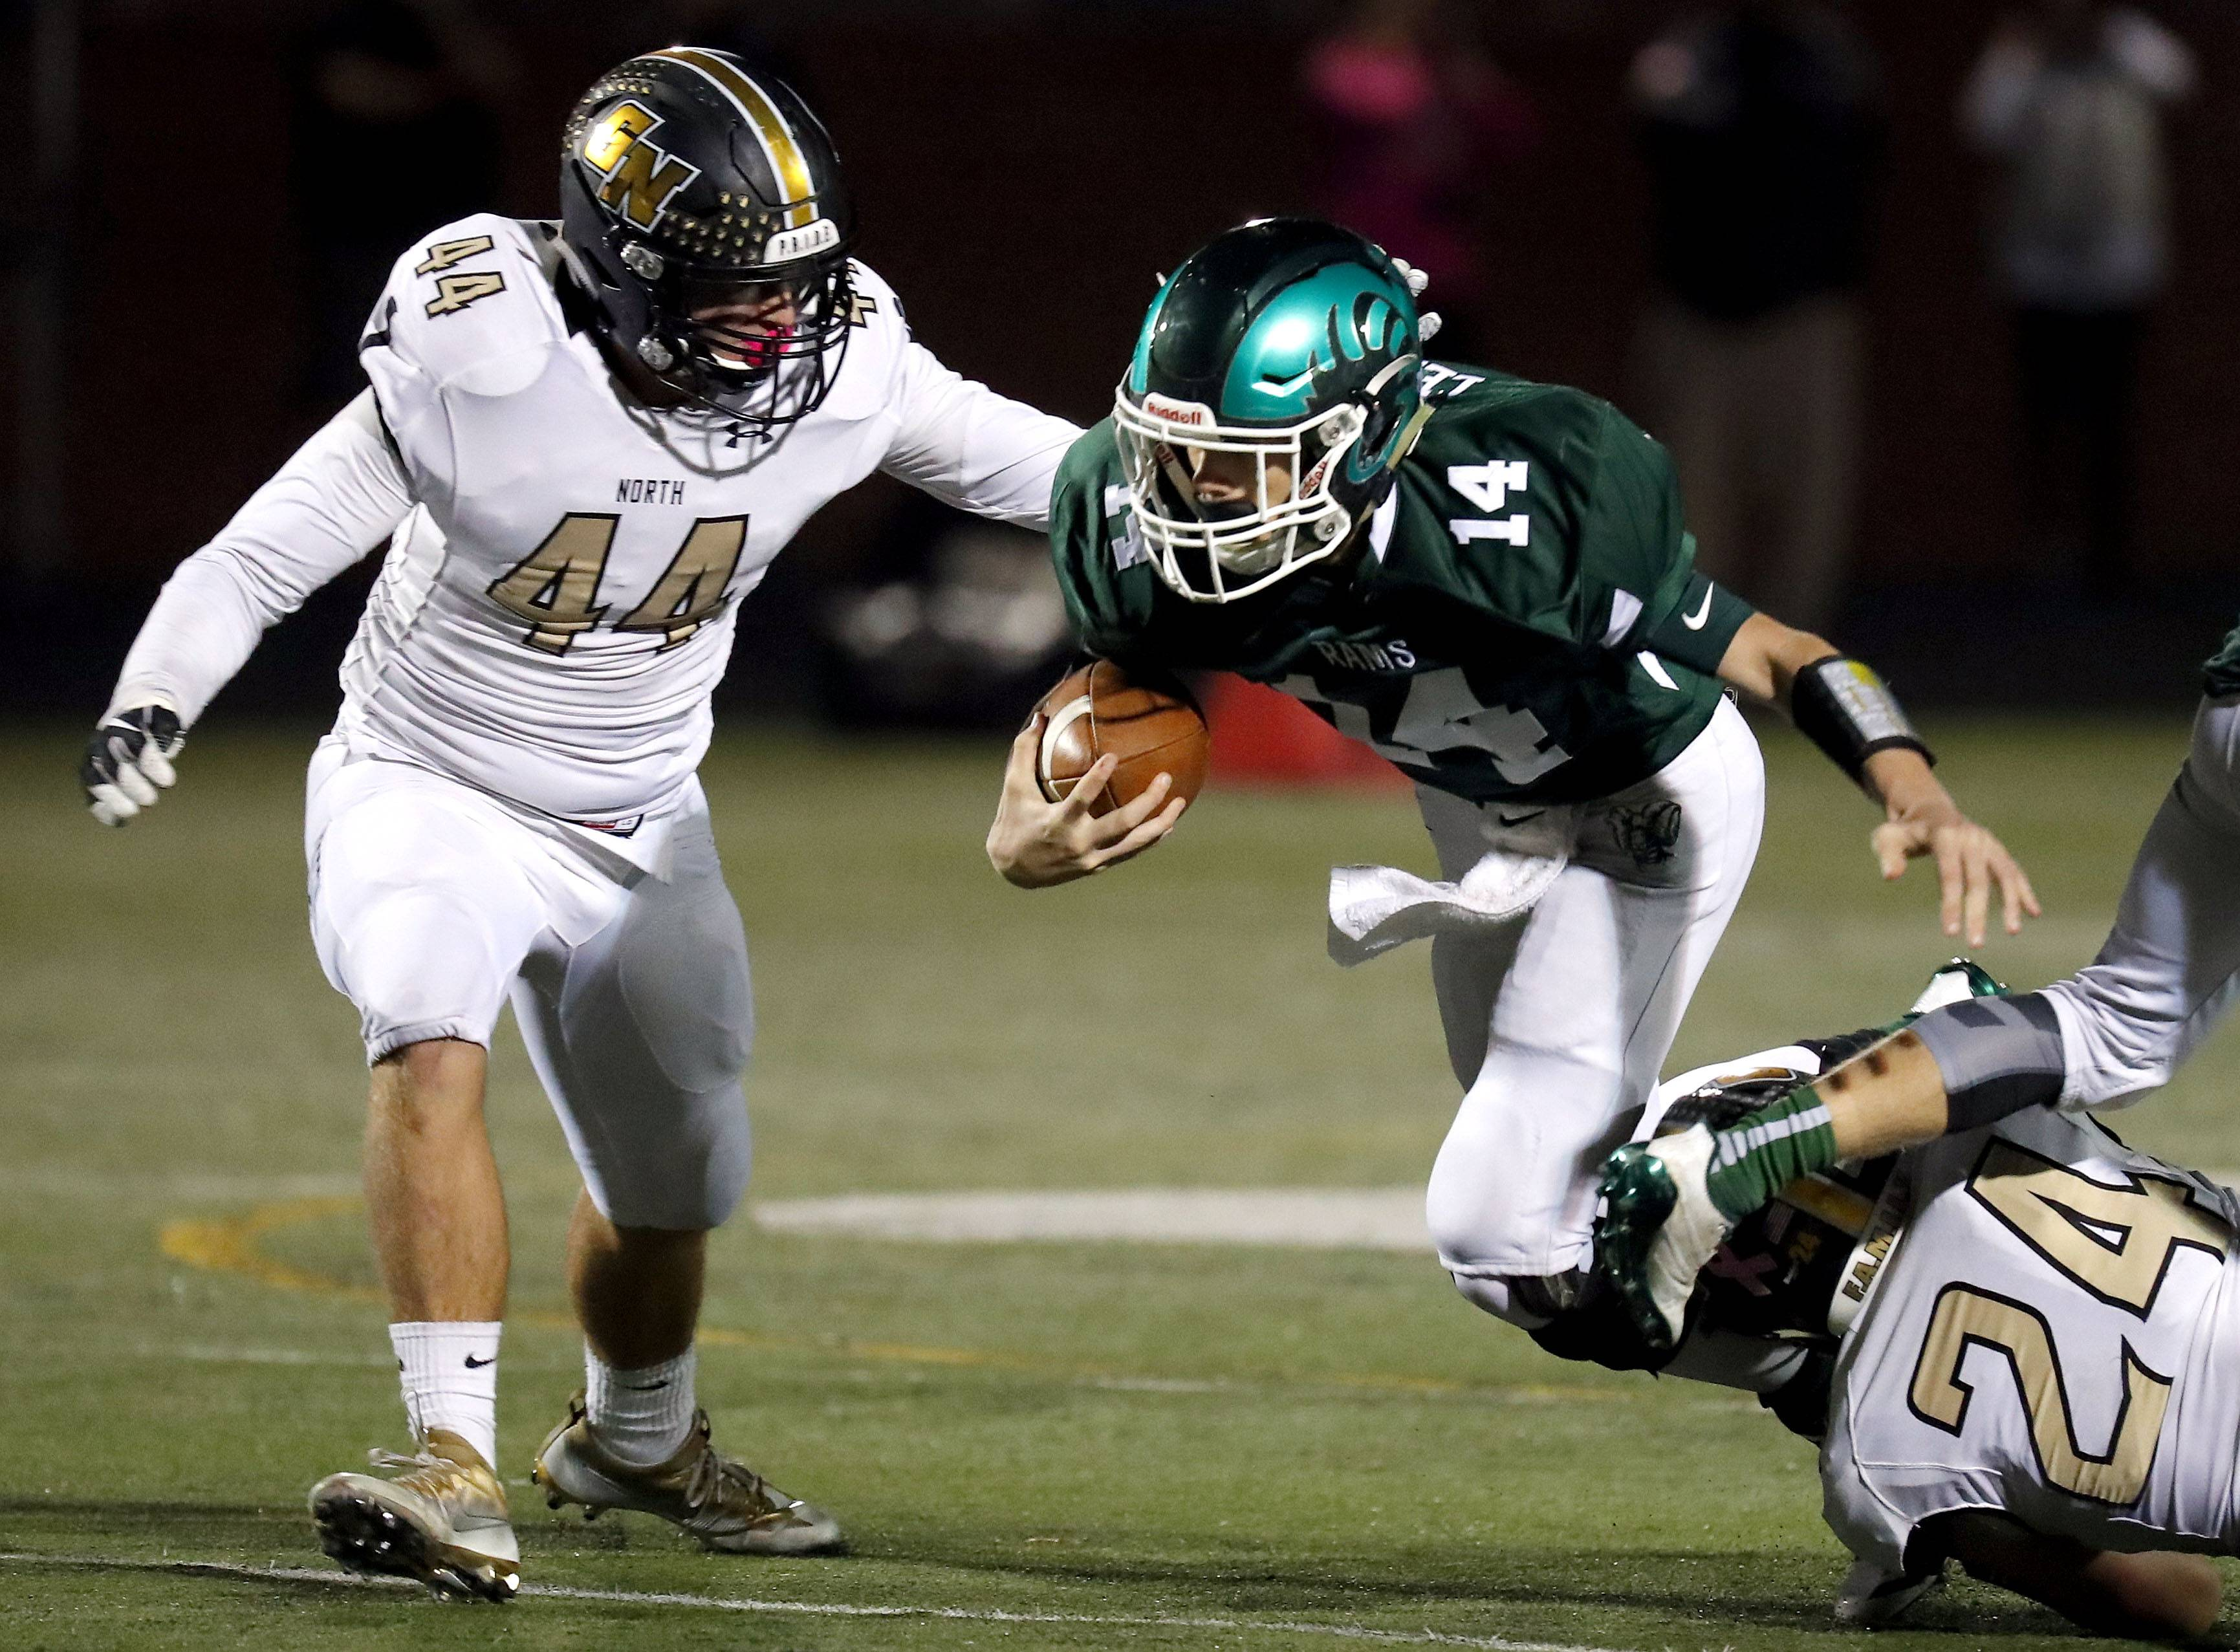 Grayslake Central's Sam Lennartz (14) tries to get away from Grayslake North's Adam George (44) and Michael Jordan on Friday night at Grayslake Central.